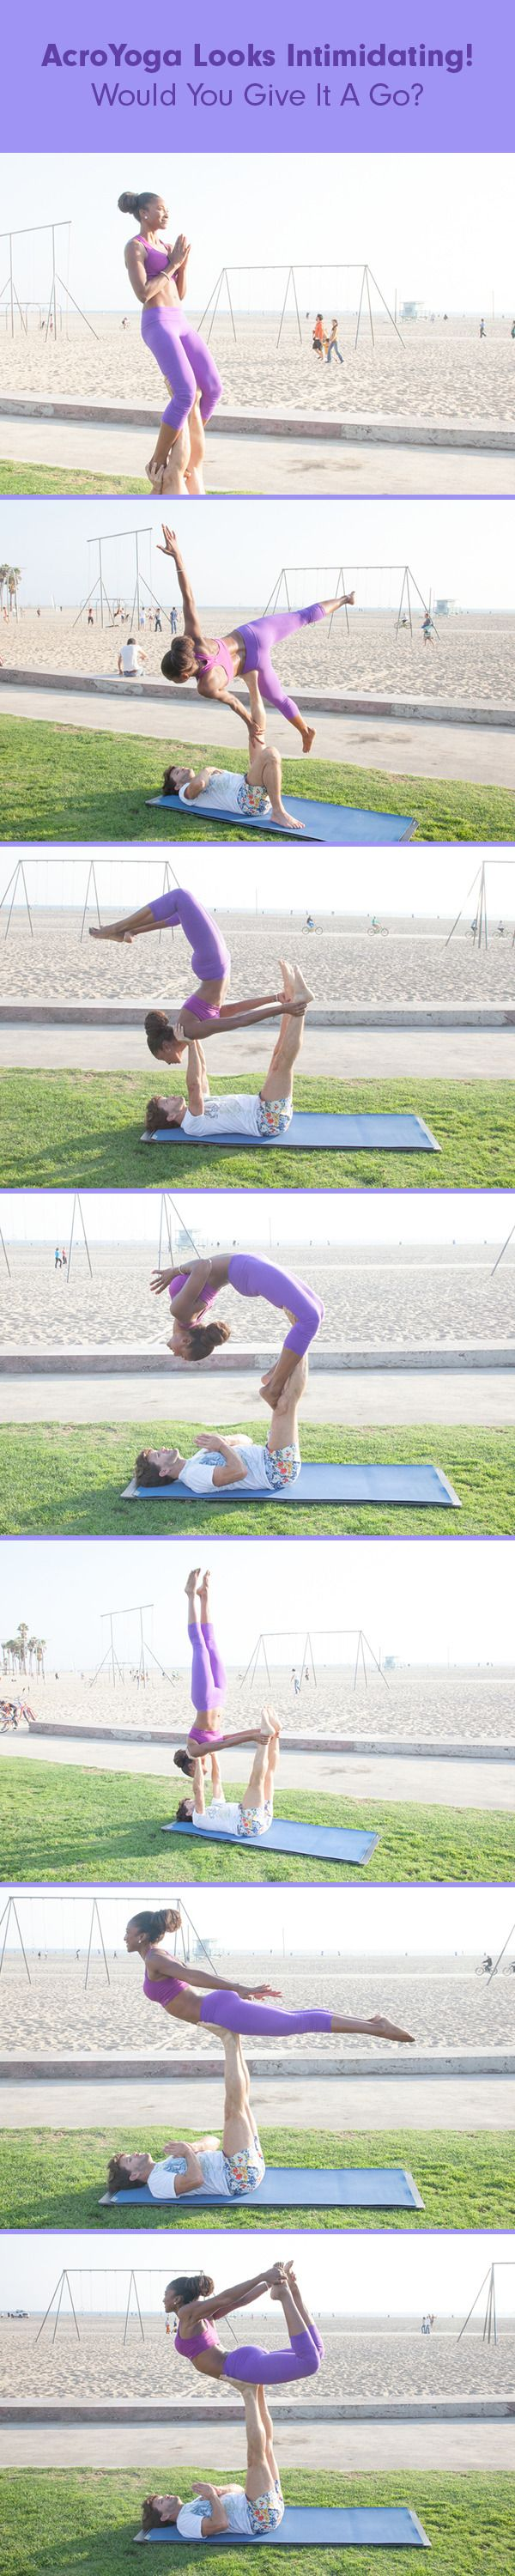 AcroYoga Looks Intimidating! Would You Give It A Go?